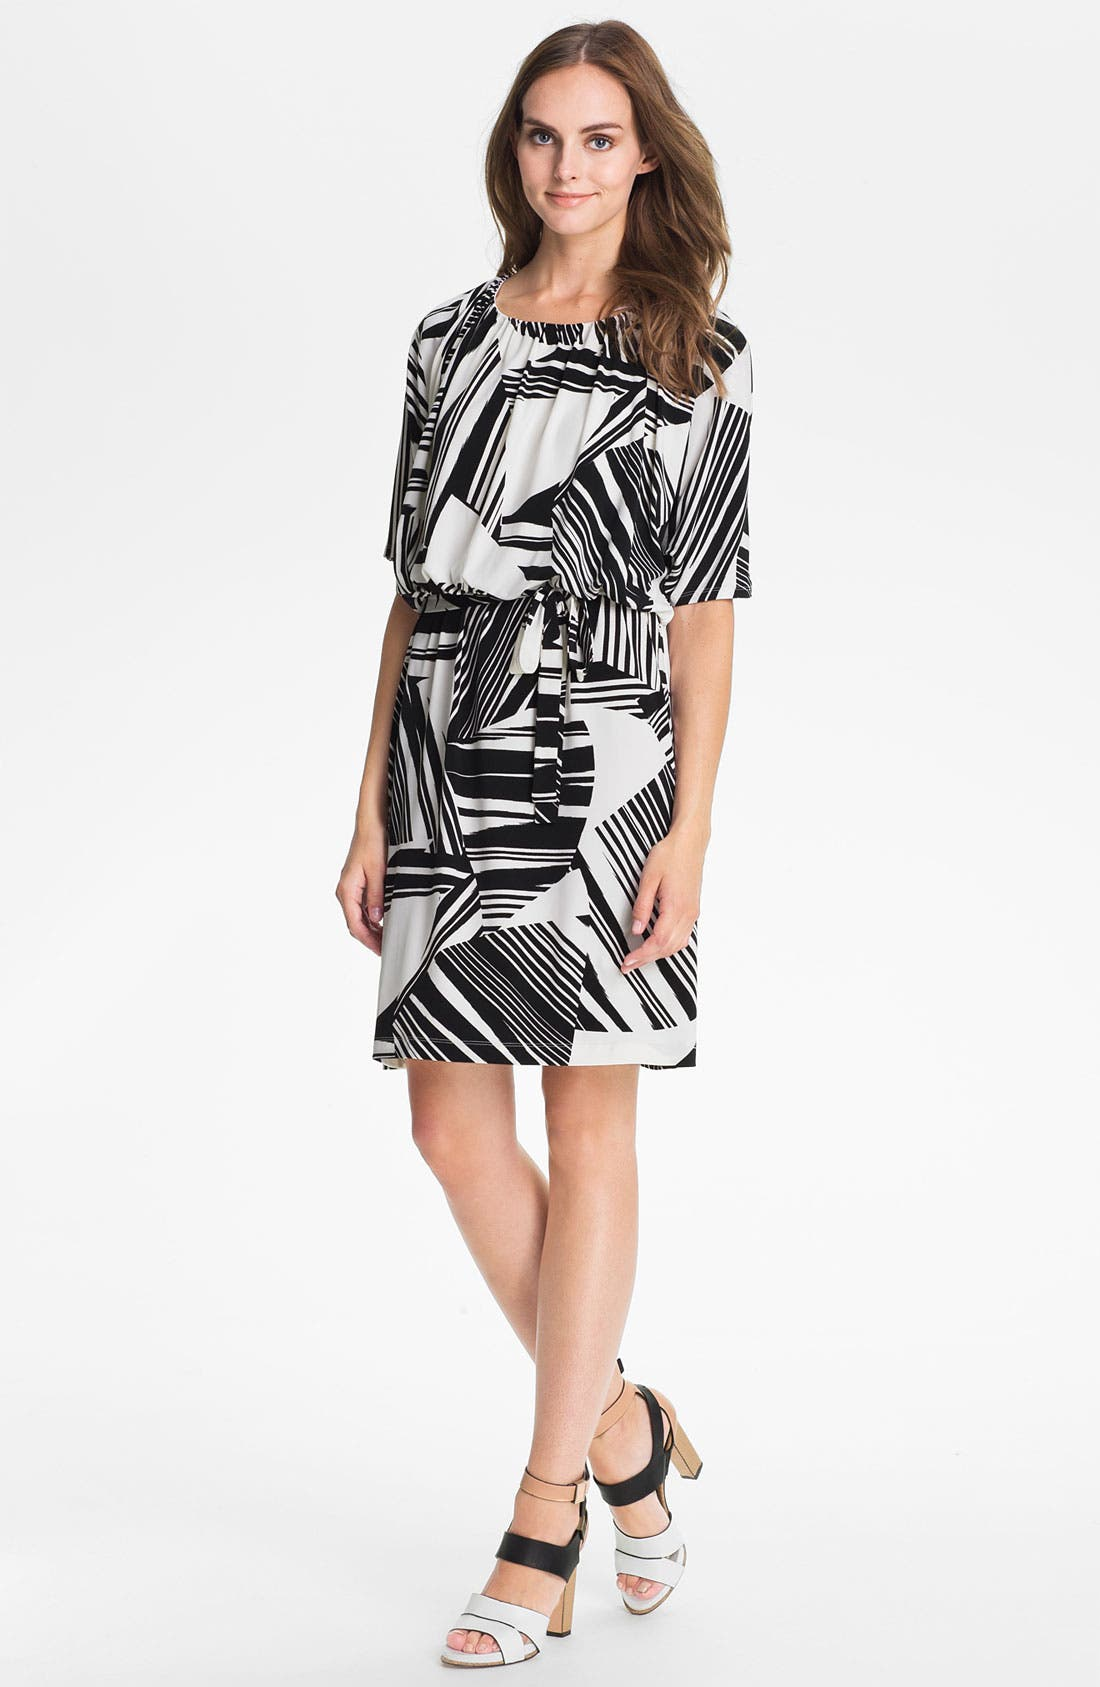 Main Image - Suzi Chin for Maggy Boutique Print Blouson Dress